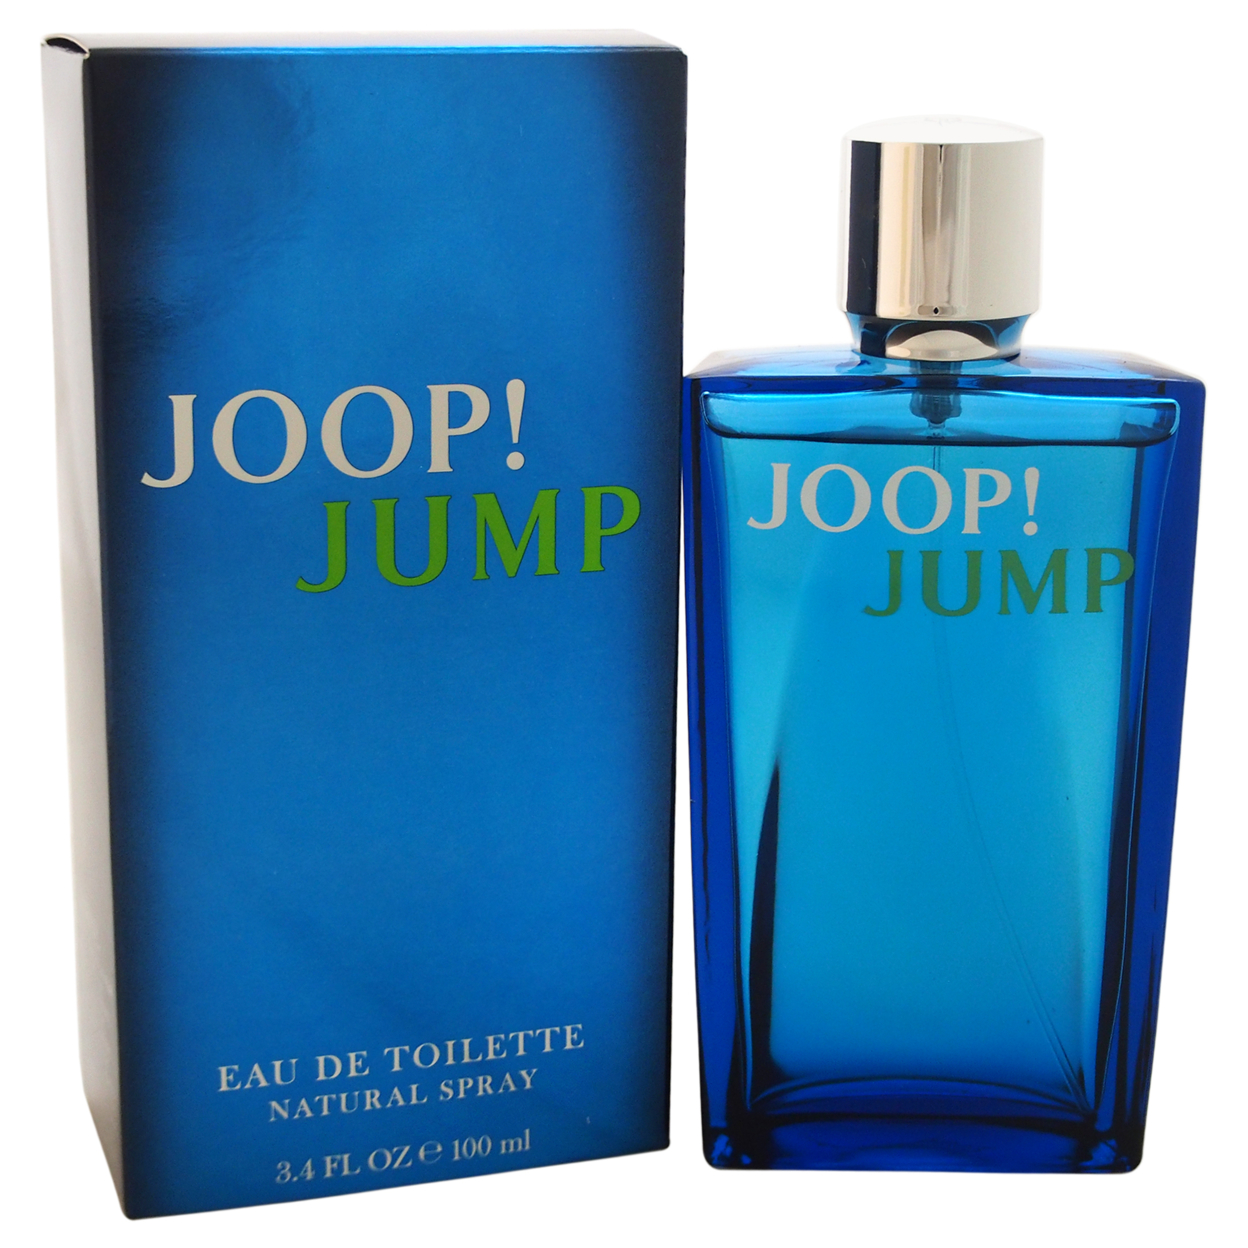 Joop! Jump by Joop! for Men - 3.4 oz EDT Spray